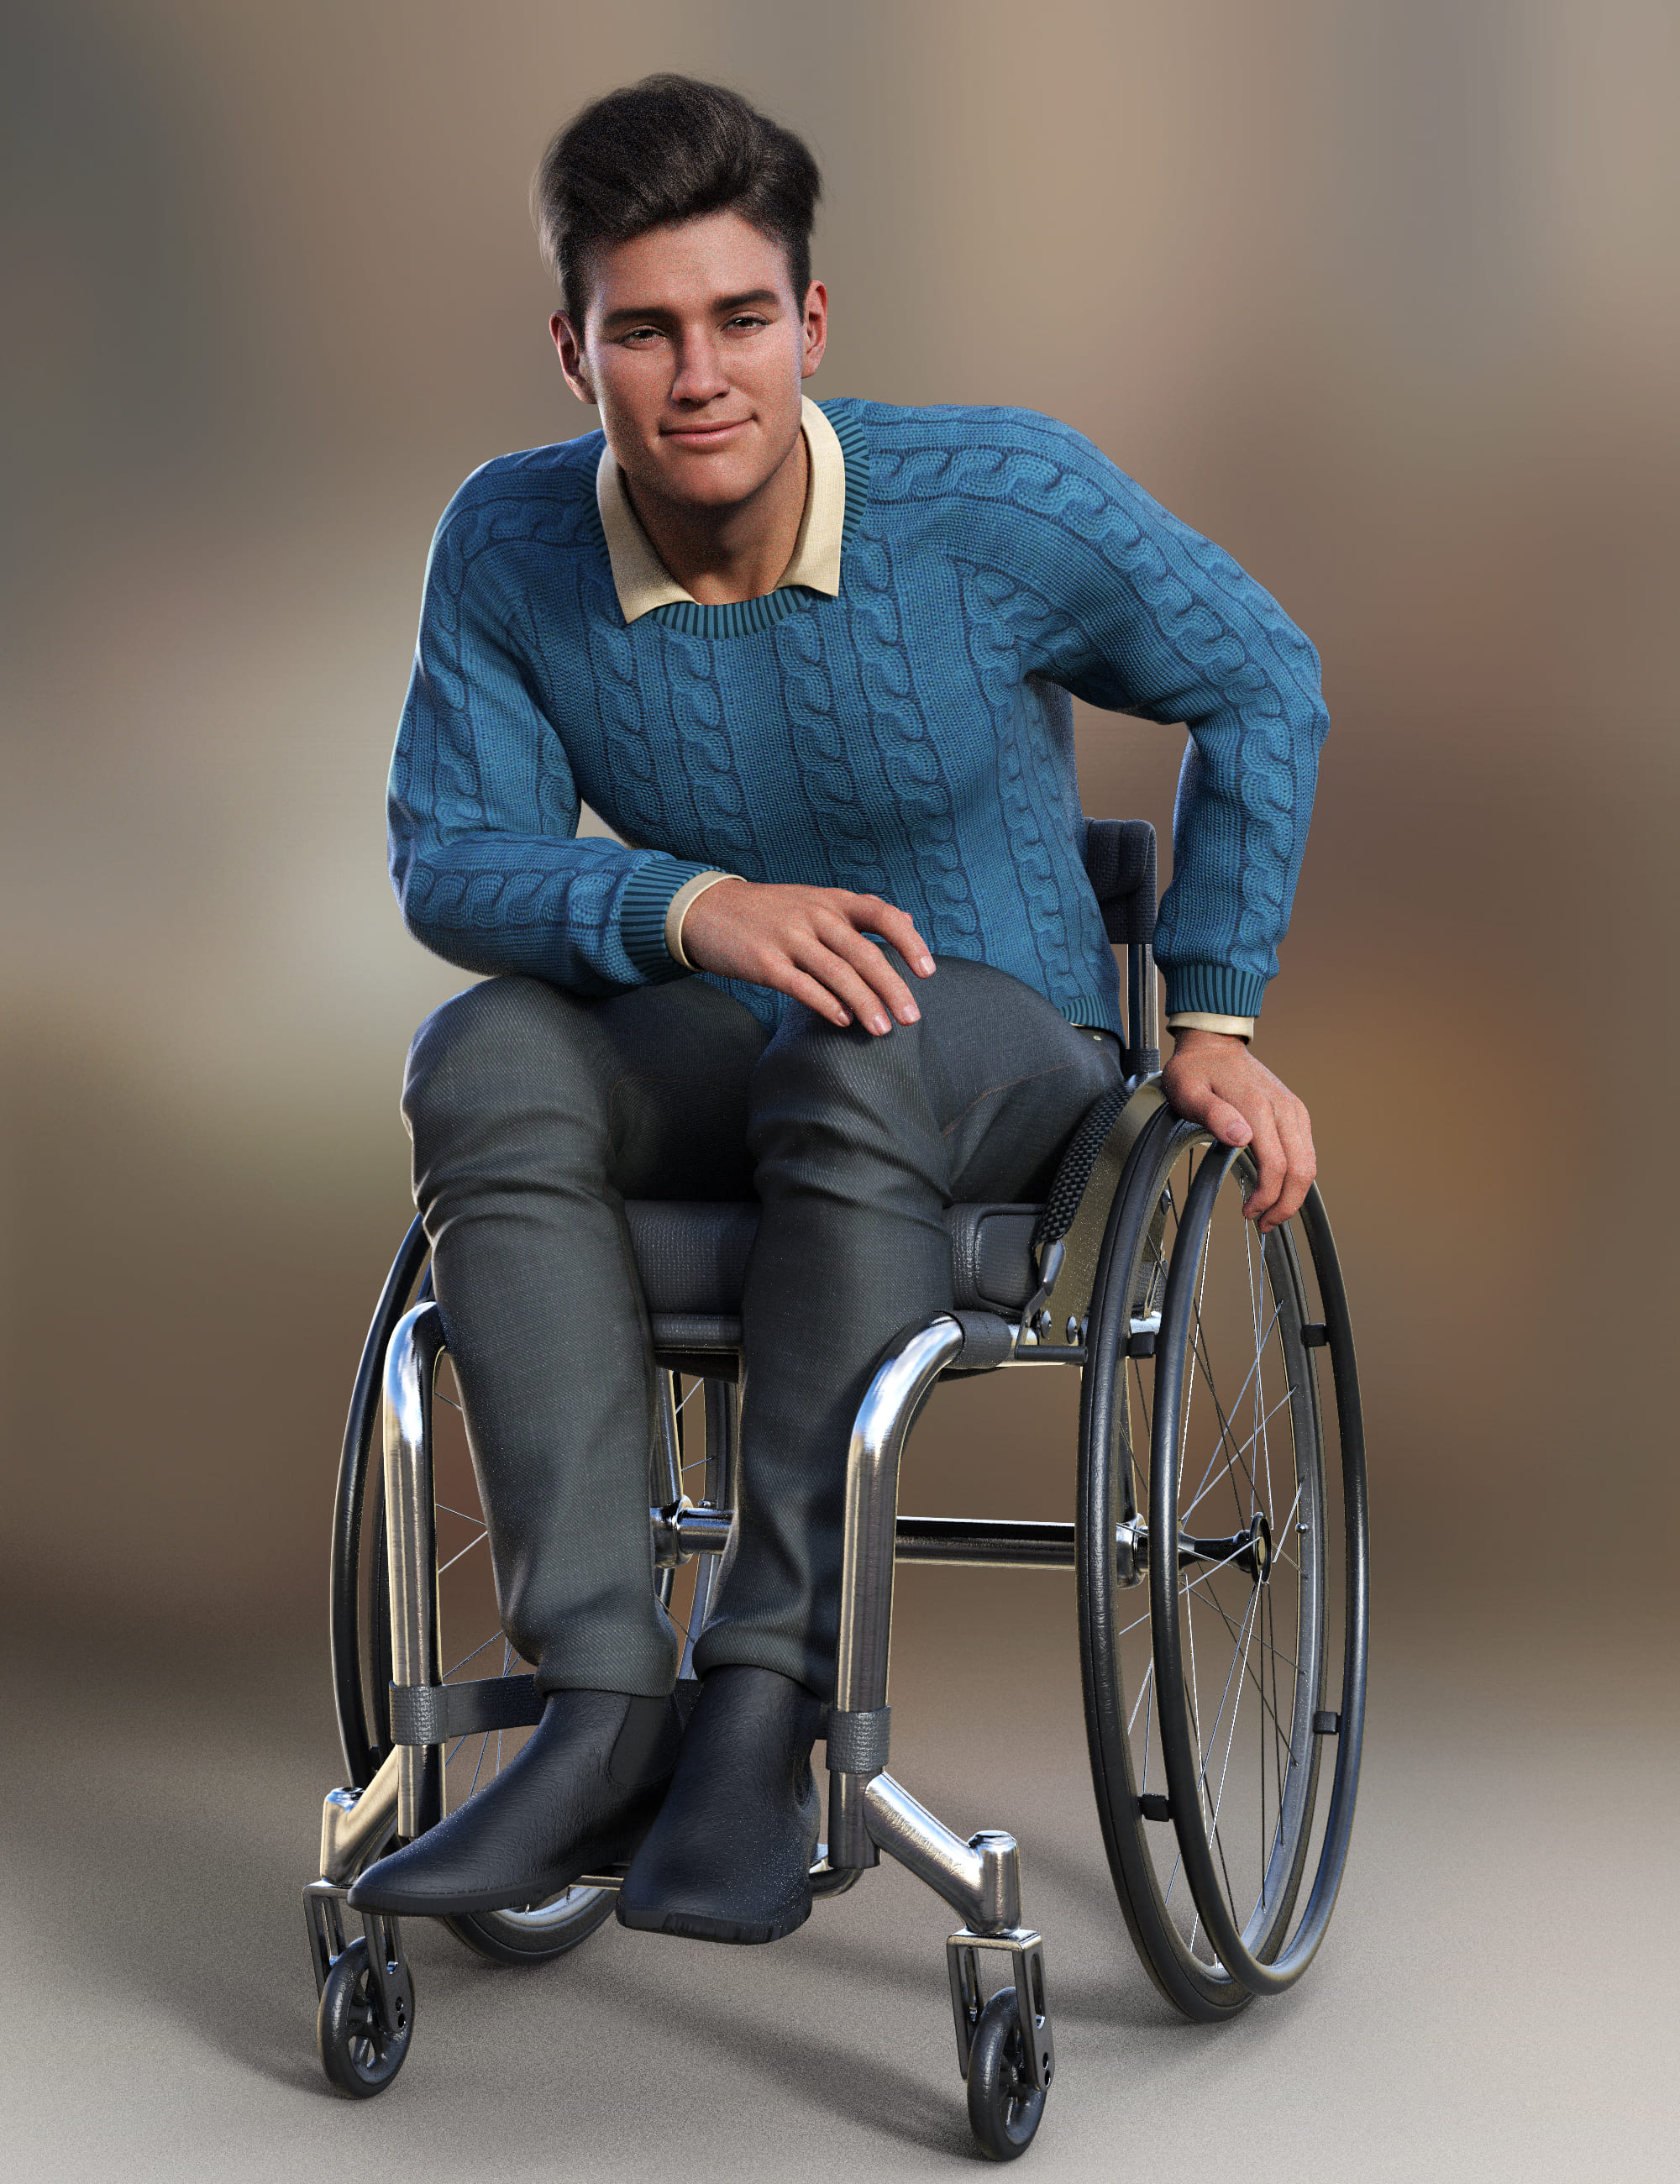 Everyday Wheelchair Animations for Genesis 8.1 Male and Michael 8.1_DAZ3D下载站